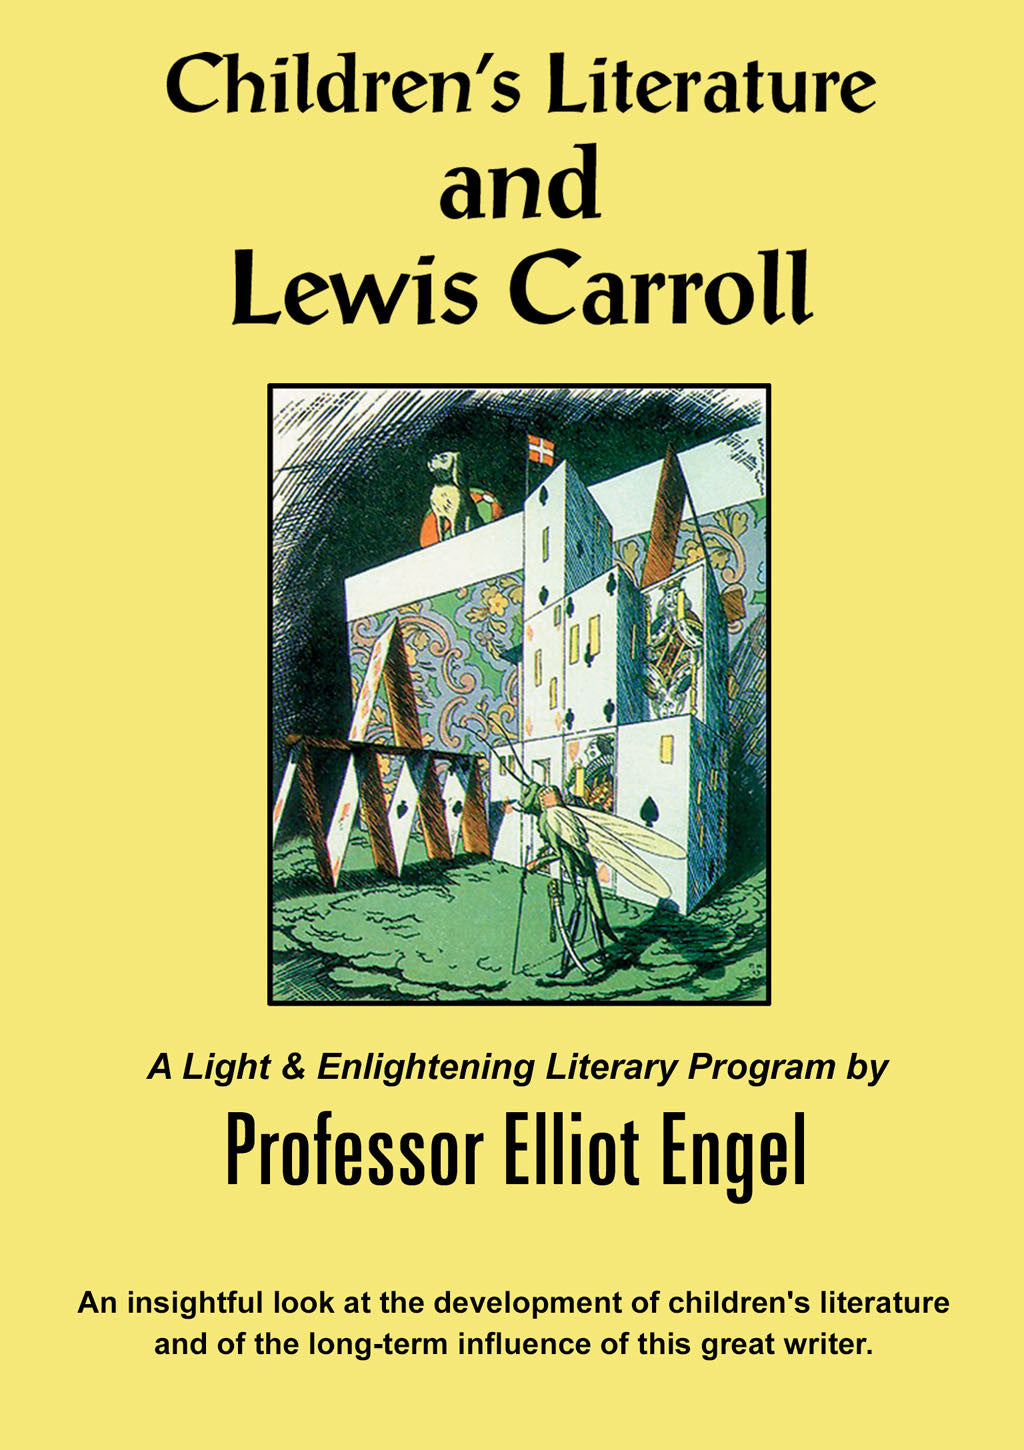 Children's Literature and Lewis Carroll